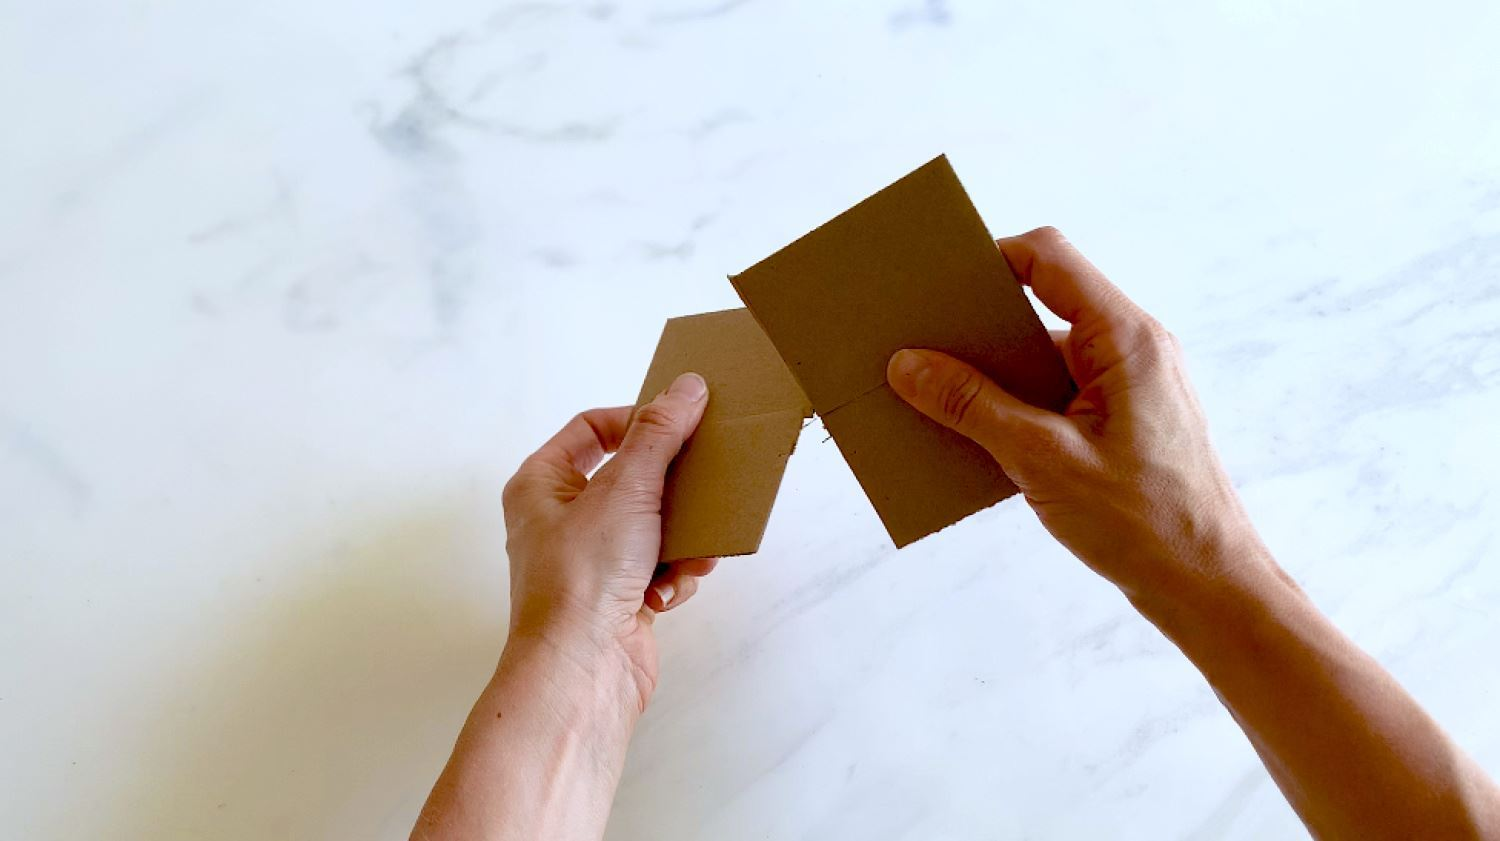 Cut and merge cardboard squares for base